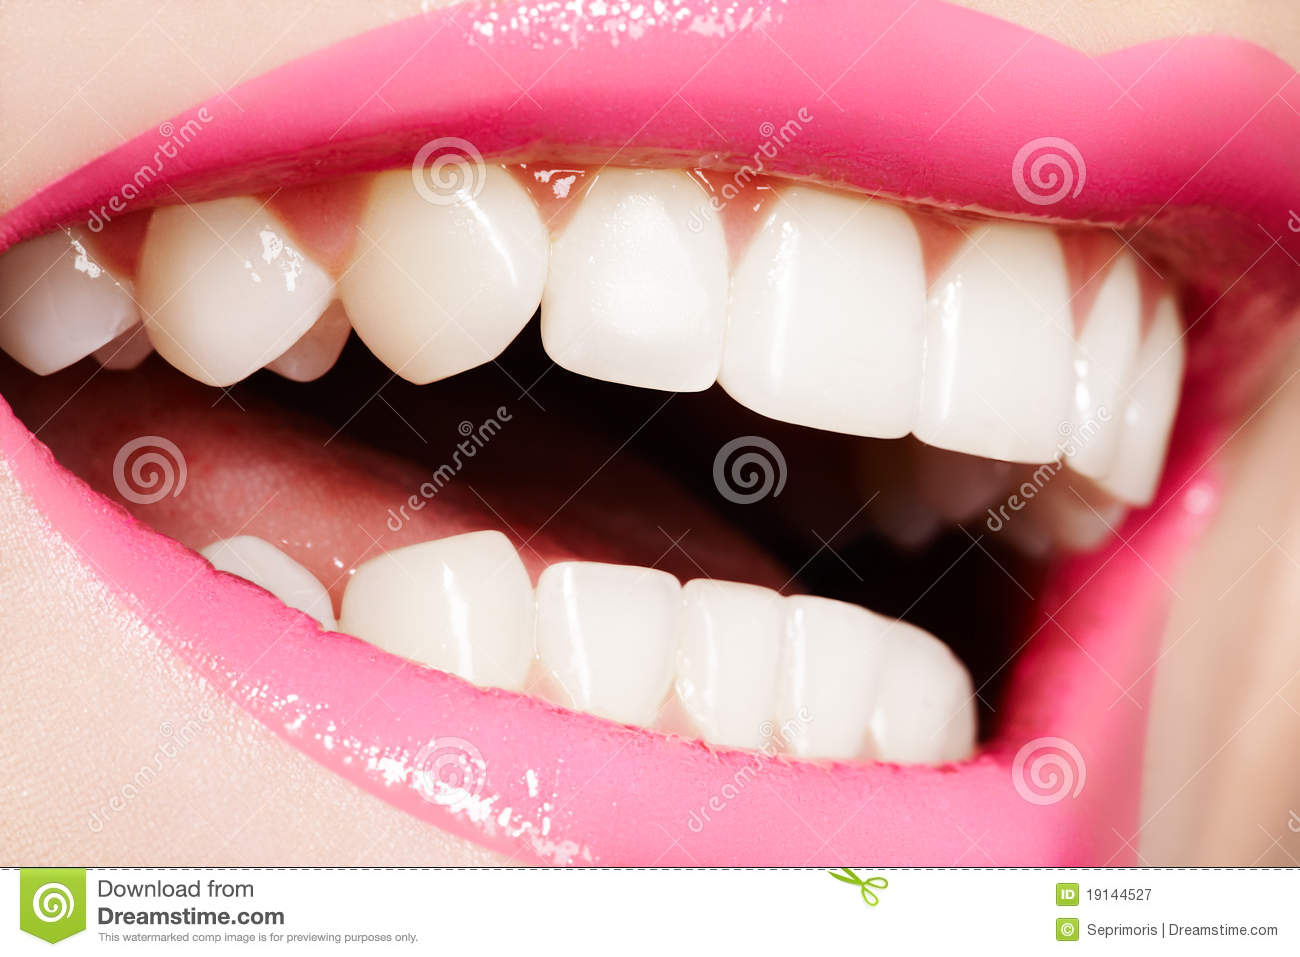 Macro happy female smile with healthy white teeth